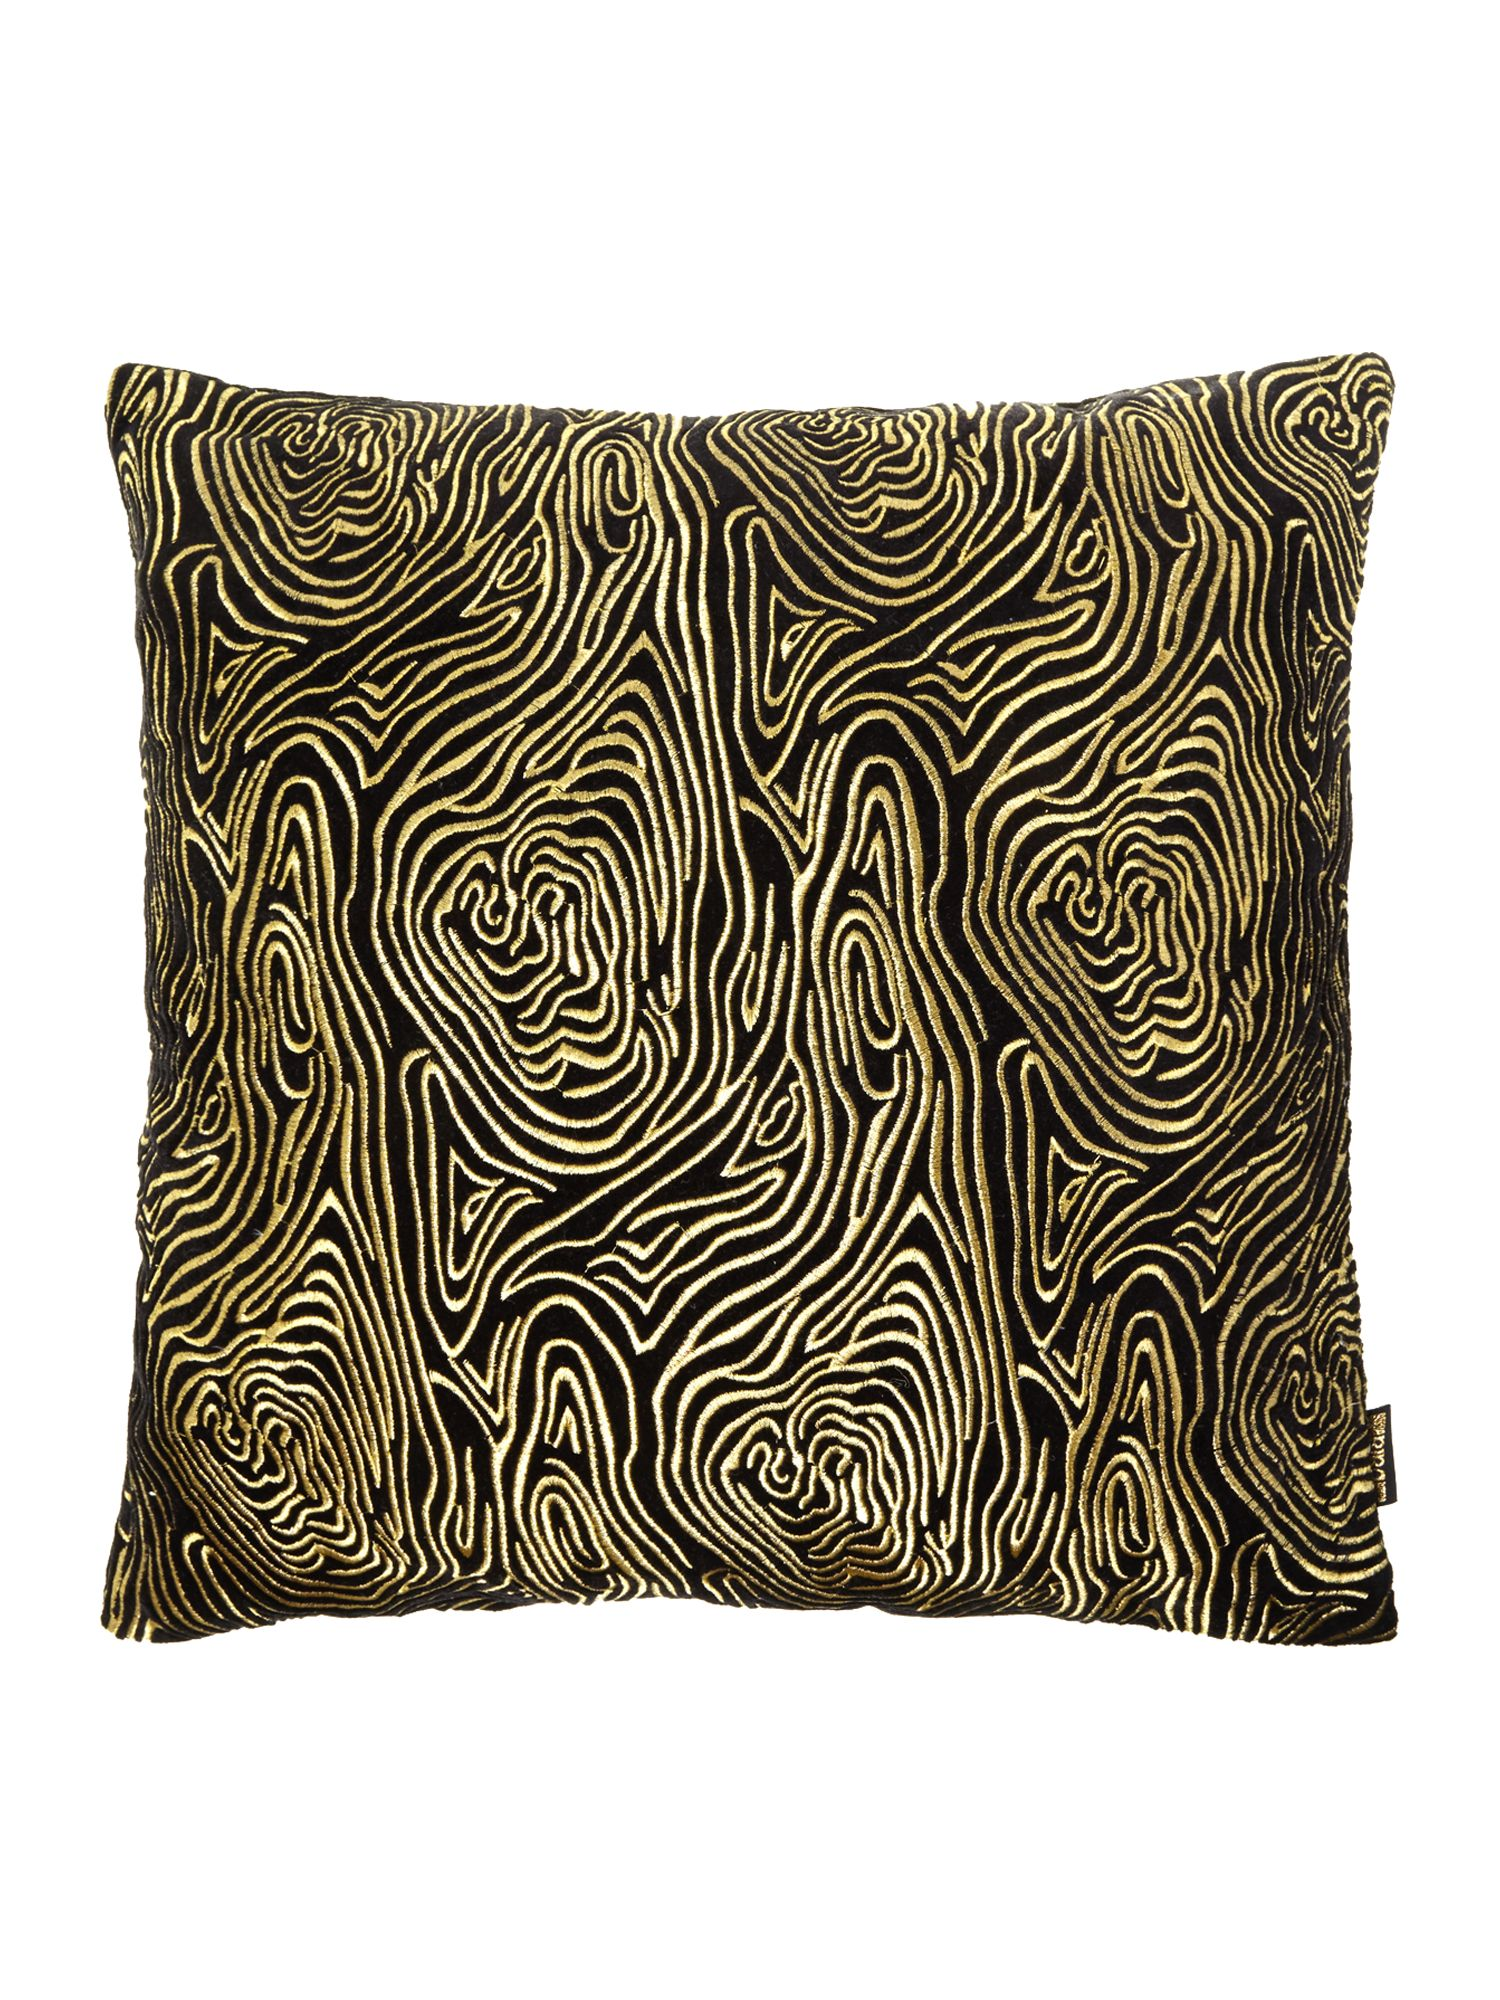 Black swirl embroided cushion